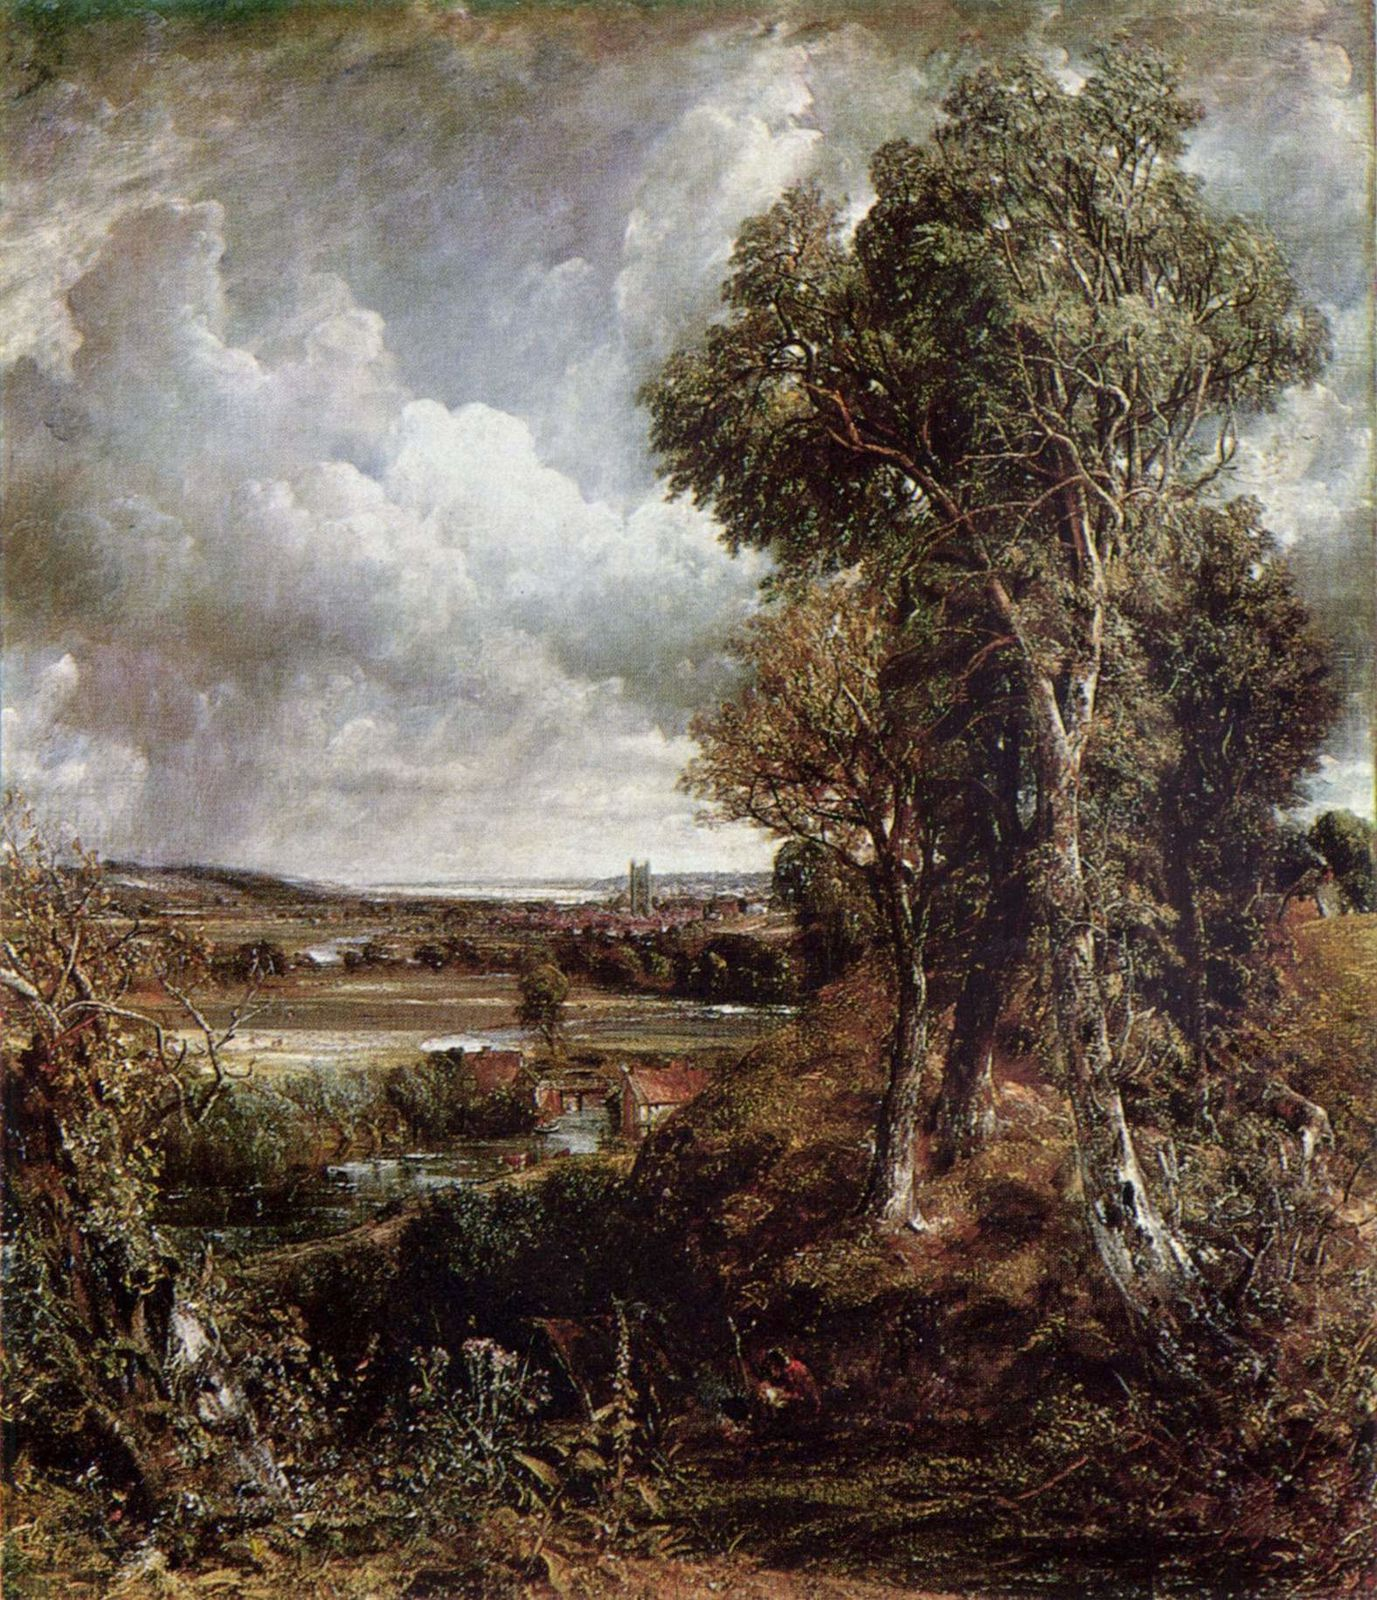 John Constable THE VALE OF DEDHAM 1828 145X122CM HUILE SUR